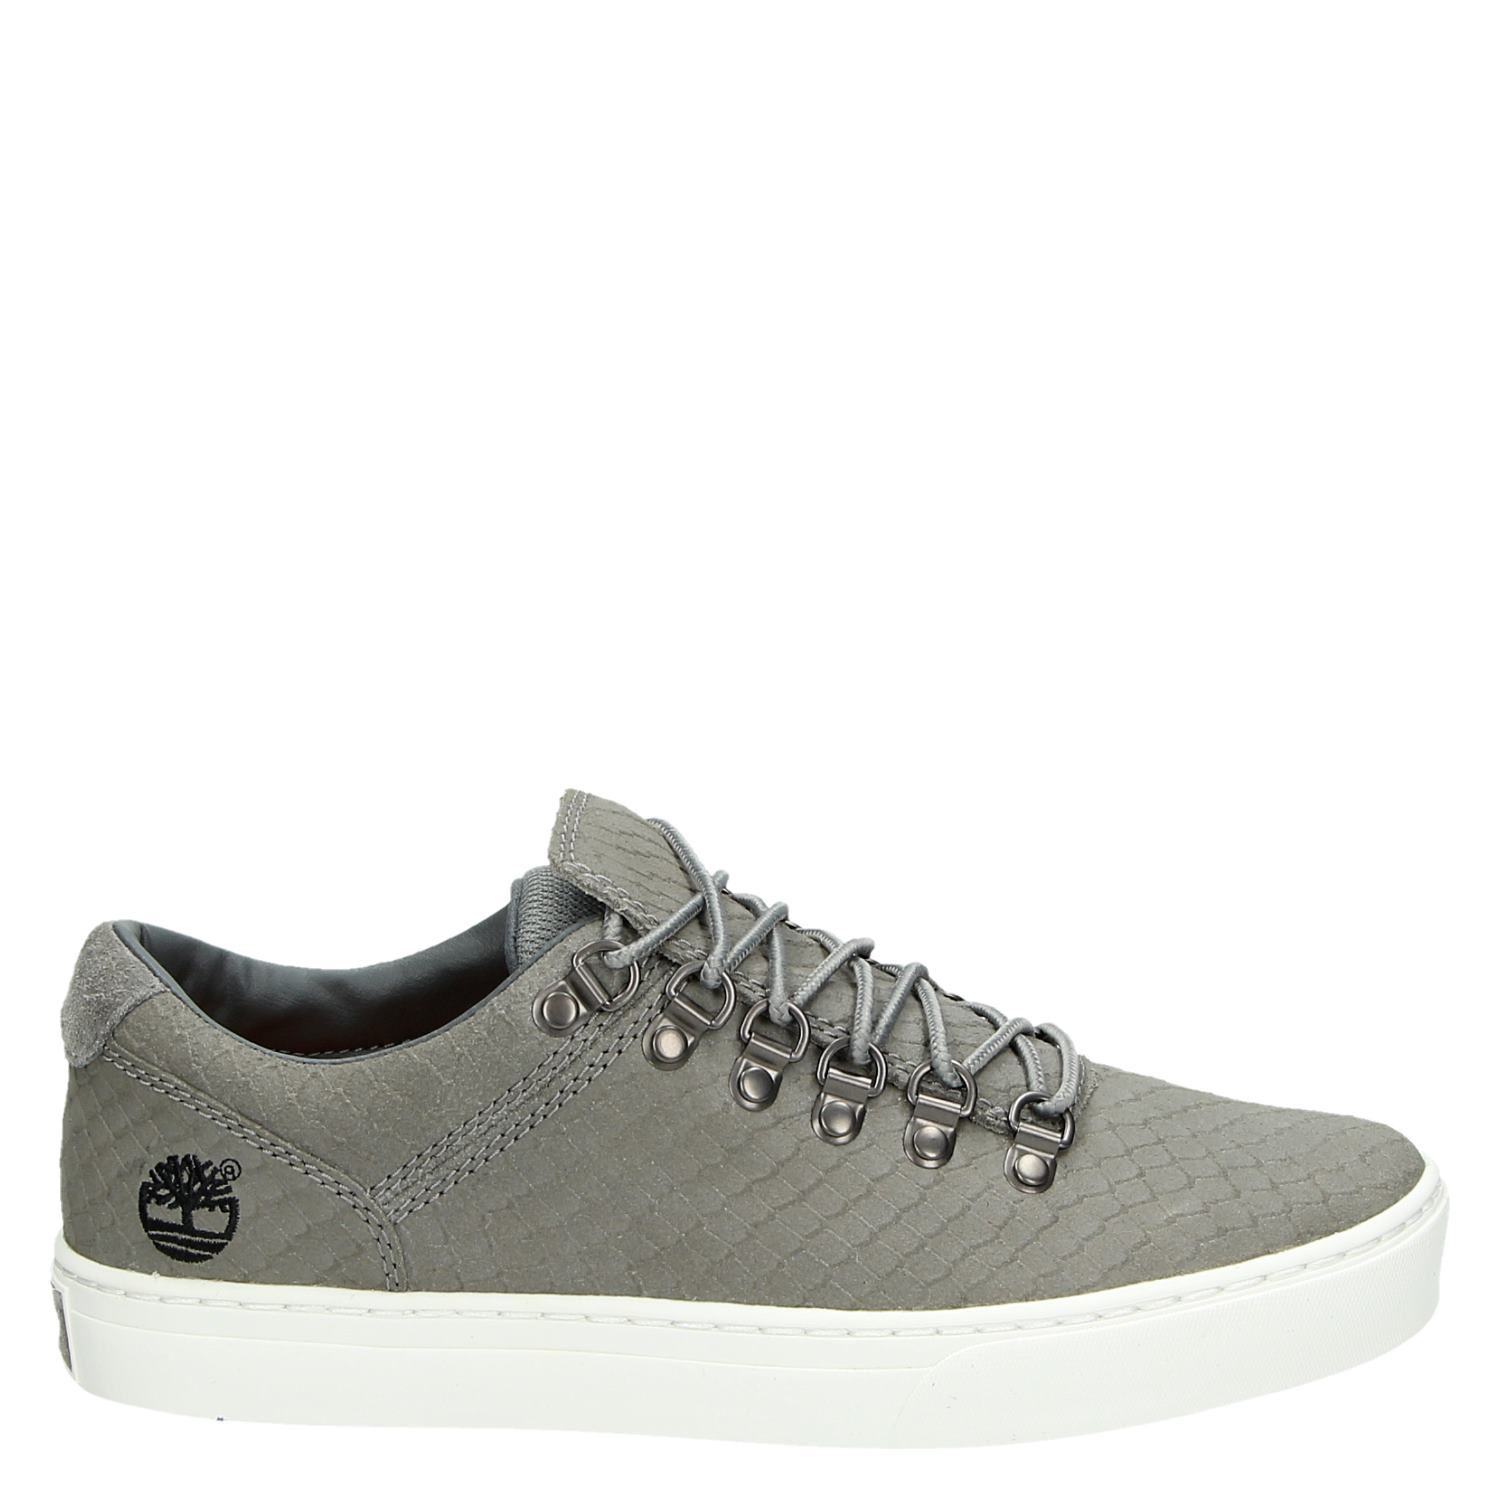 Gris Baskets Timberland - Hommes - Taille 45 bJeuA0ZD2